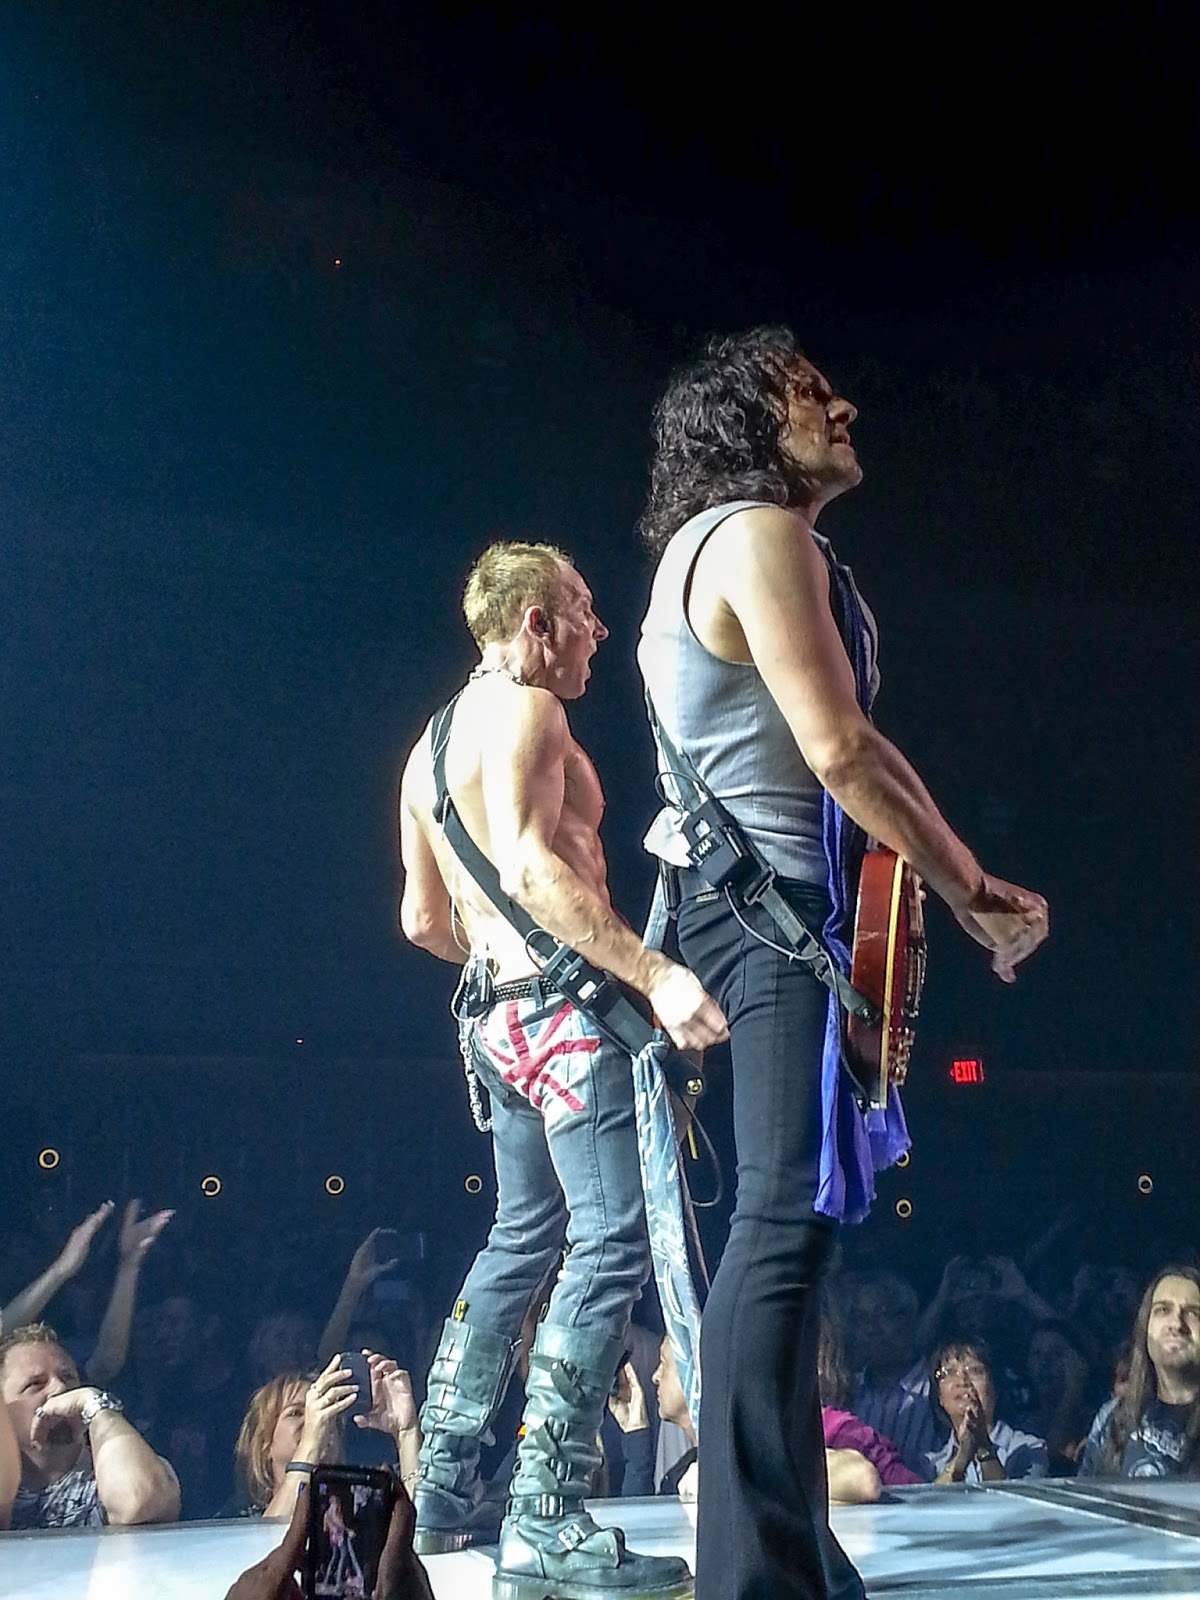 Angie in to viva def leppard phil collen and vivian campbell the guitarists kristyandbryce Choice Image